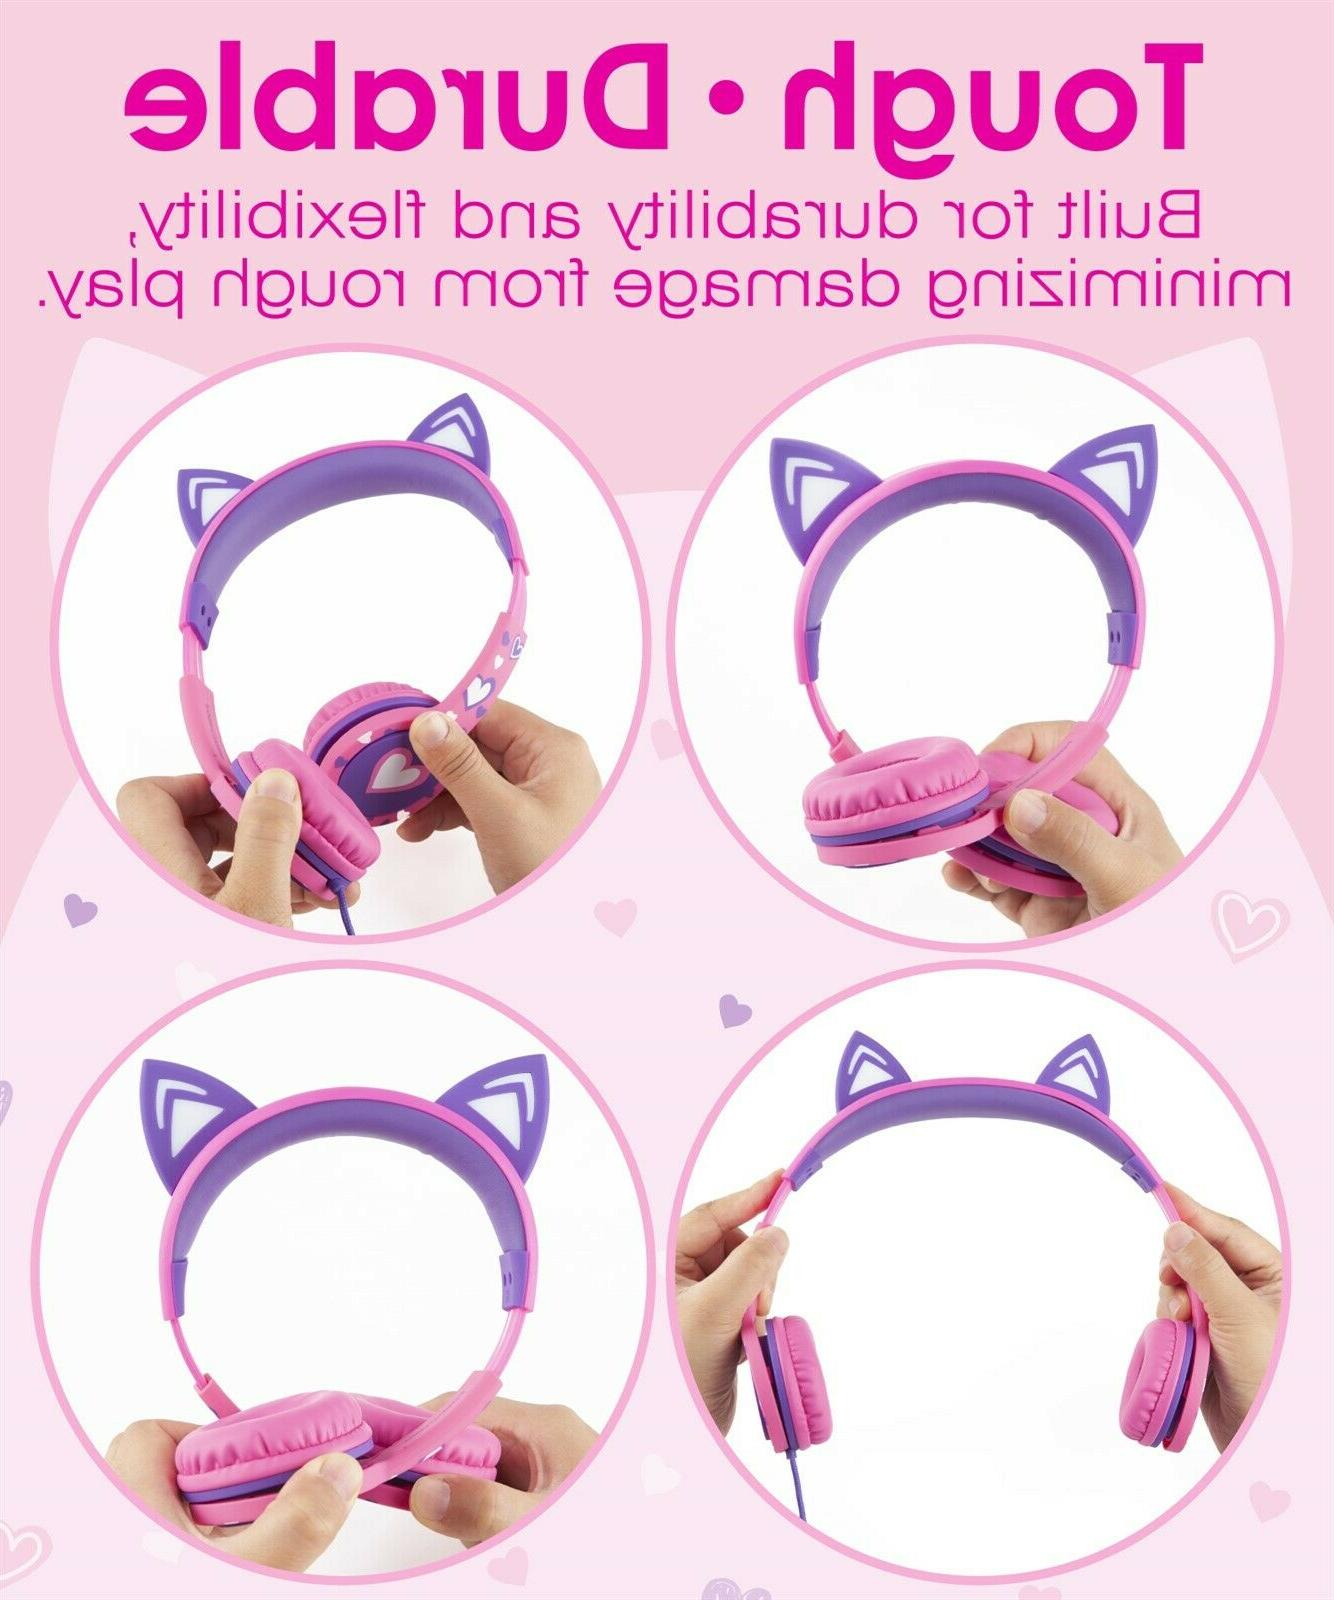 Kids Wired Cat Headphone Headsets On Pink Volume Control